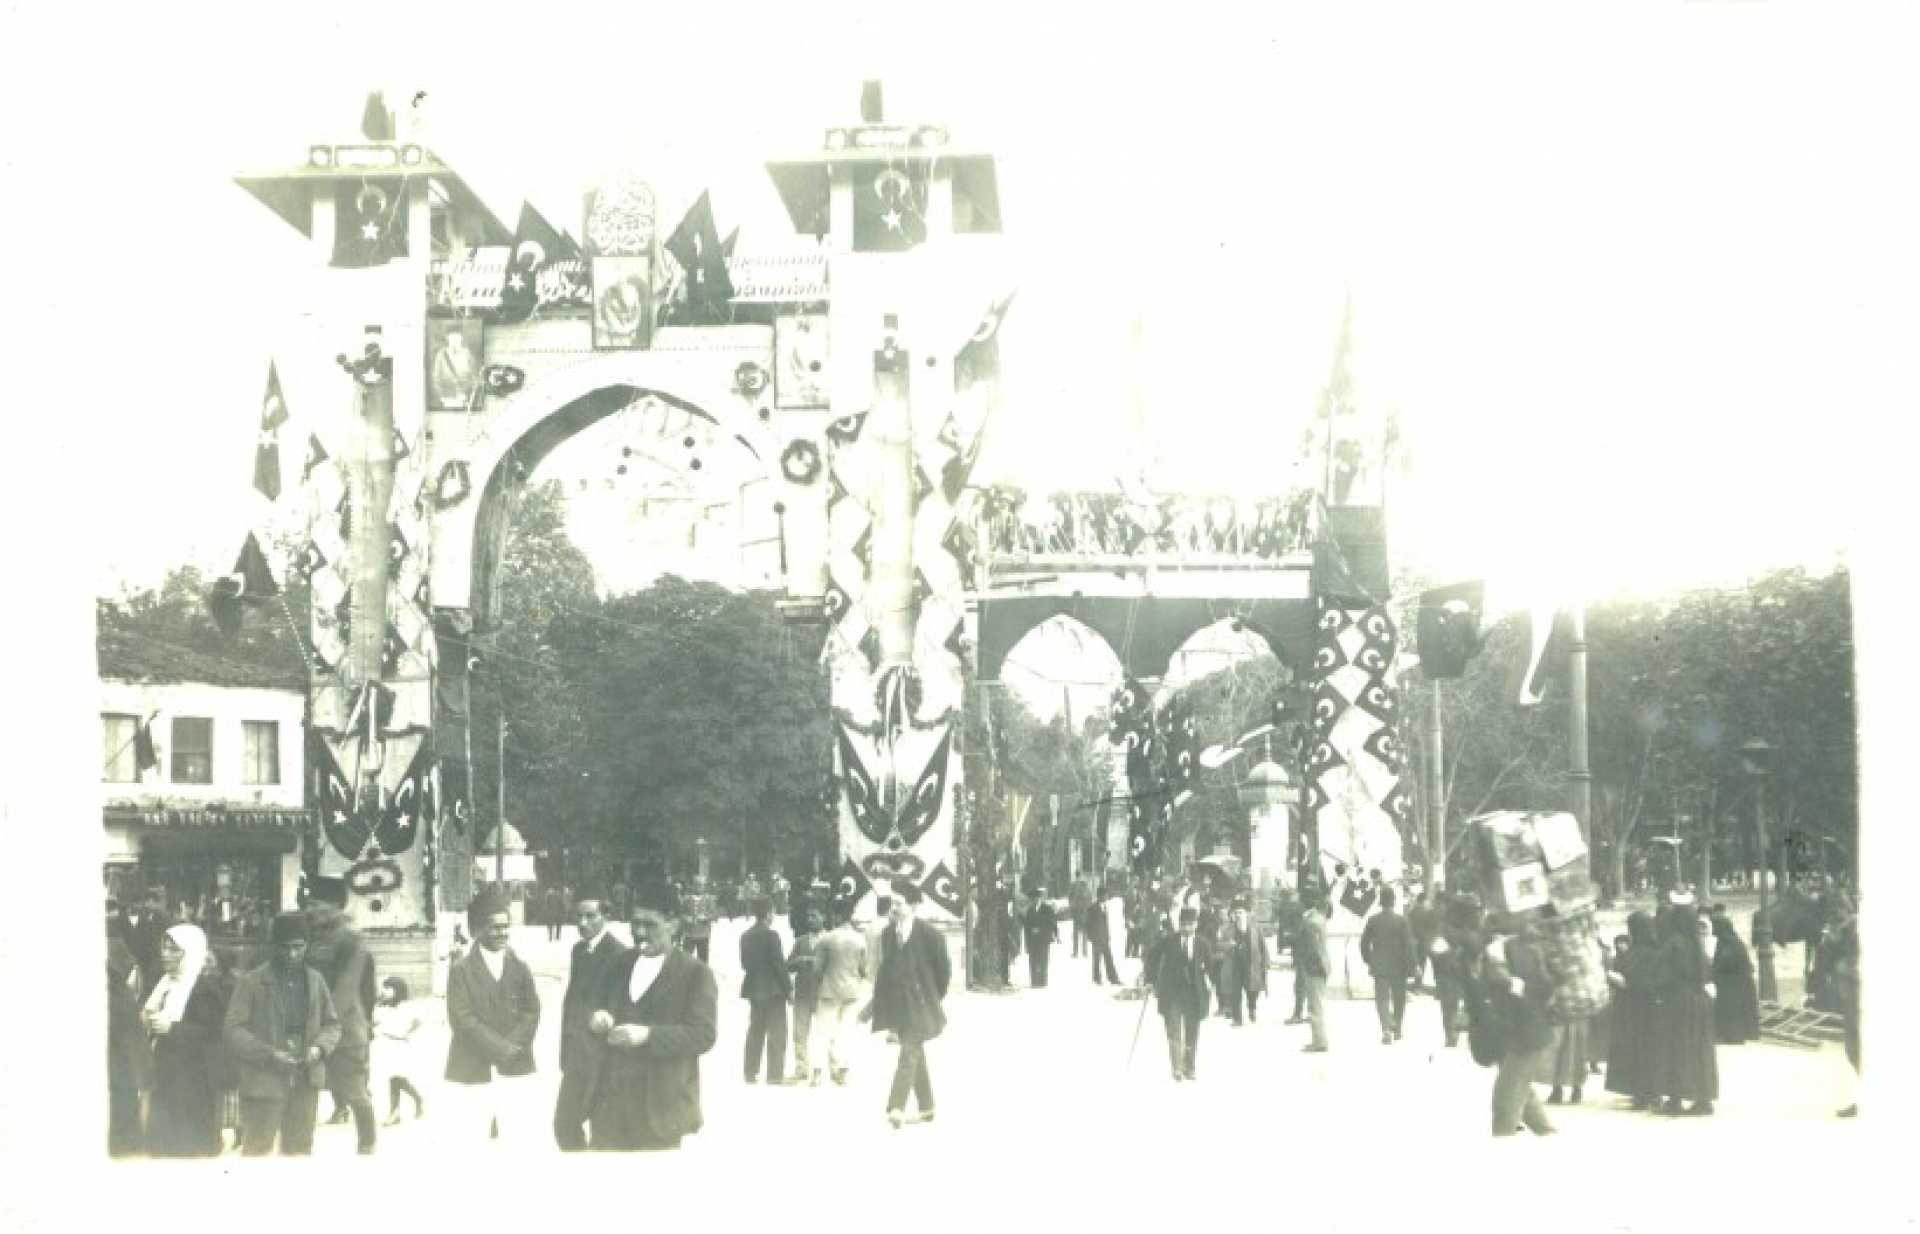 Kemal Pasha's entry into Constantinople